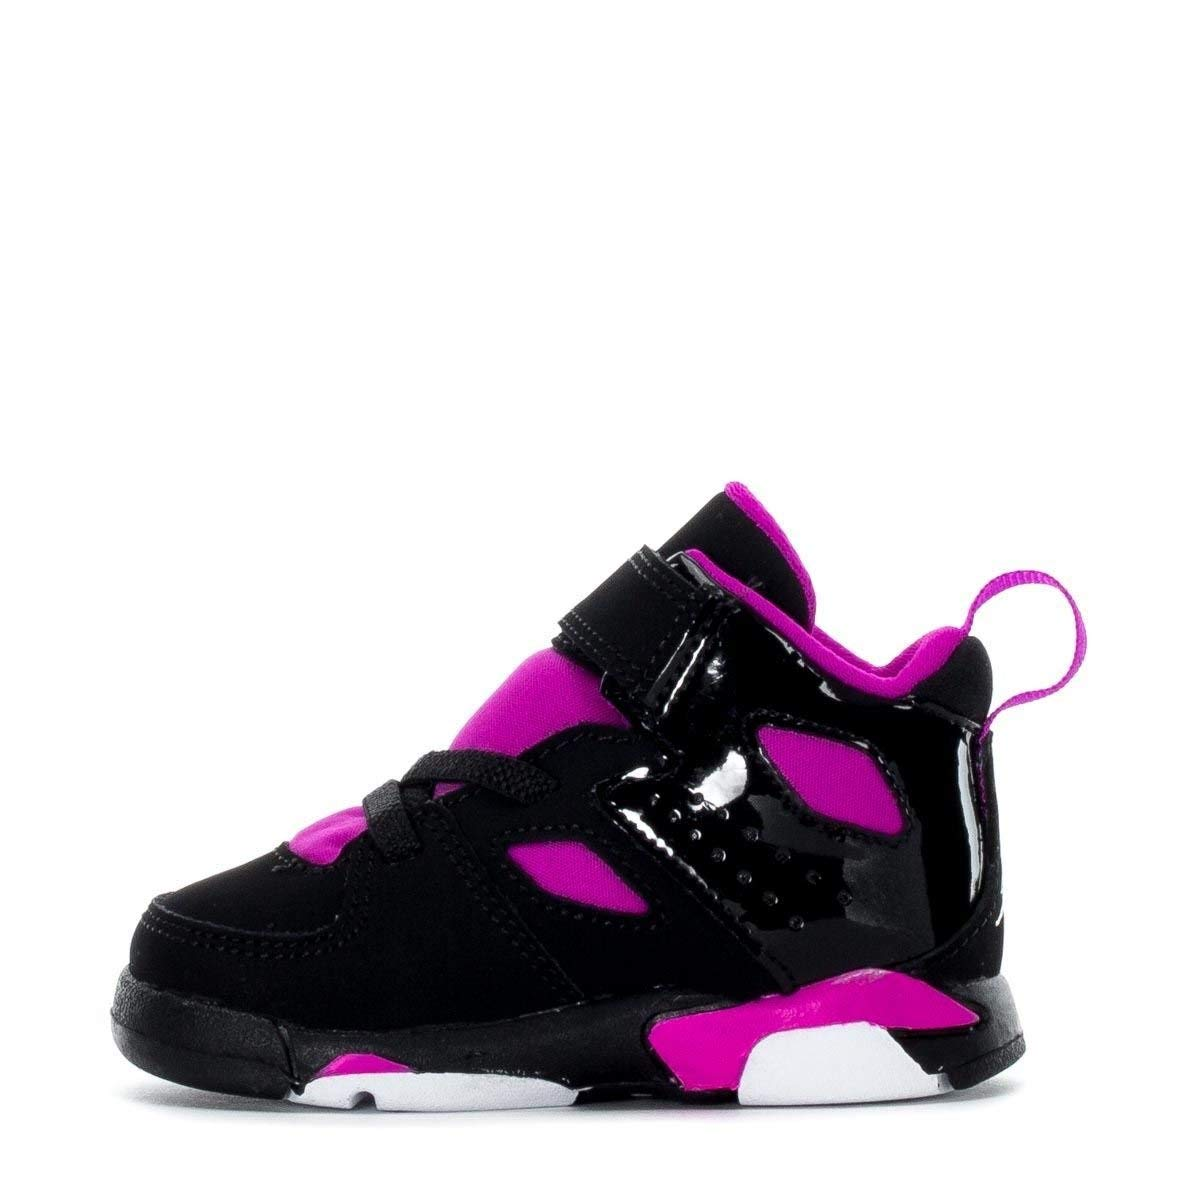 new styles 5b183 e5107 Amazon.com | Nike Jordan Infant Flight Club 91 Baby Girls ...